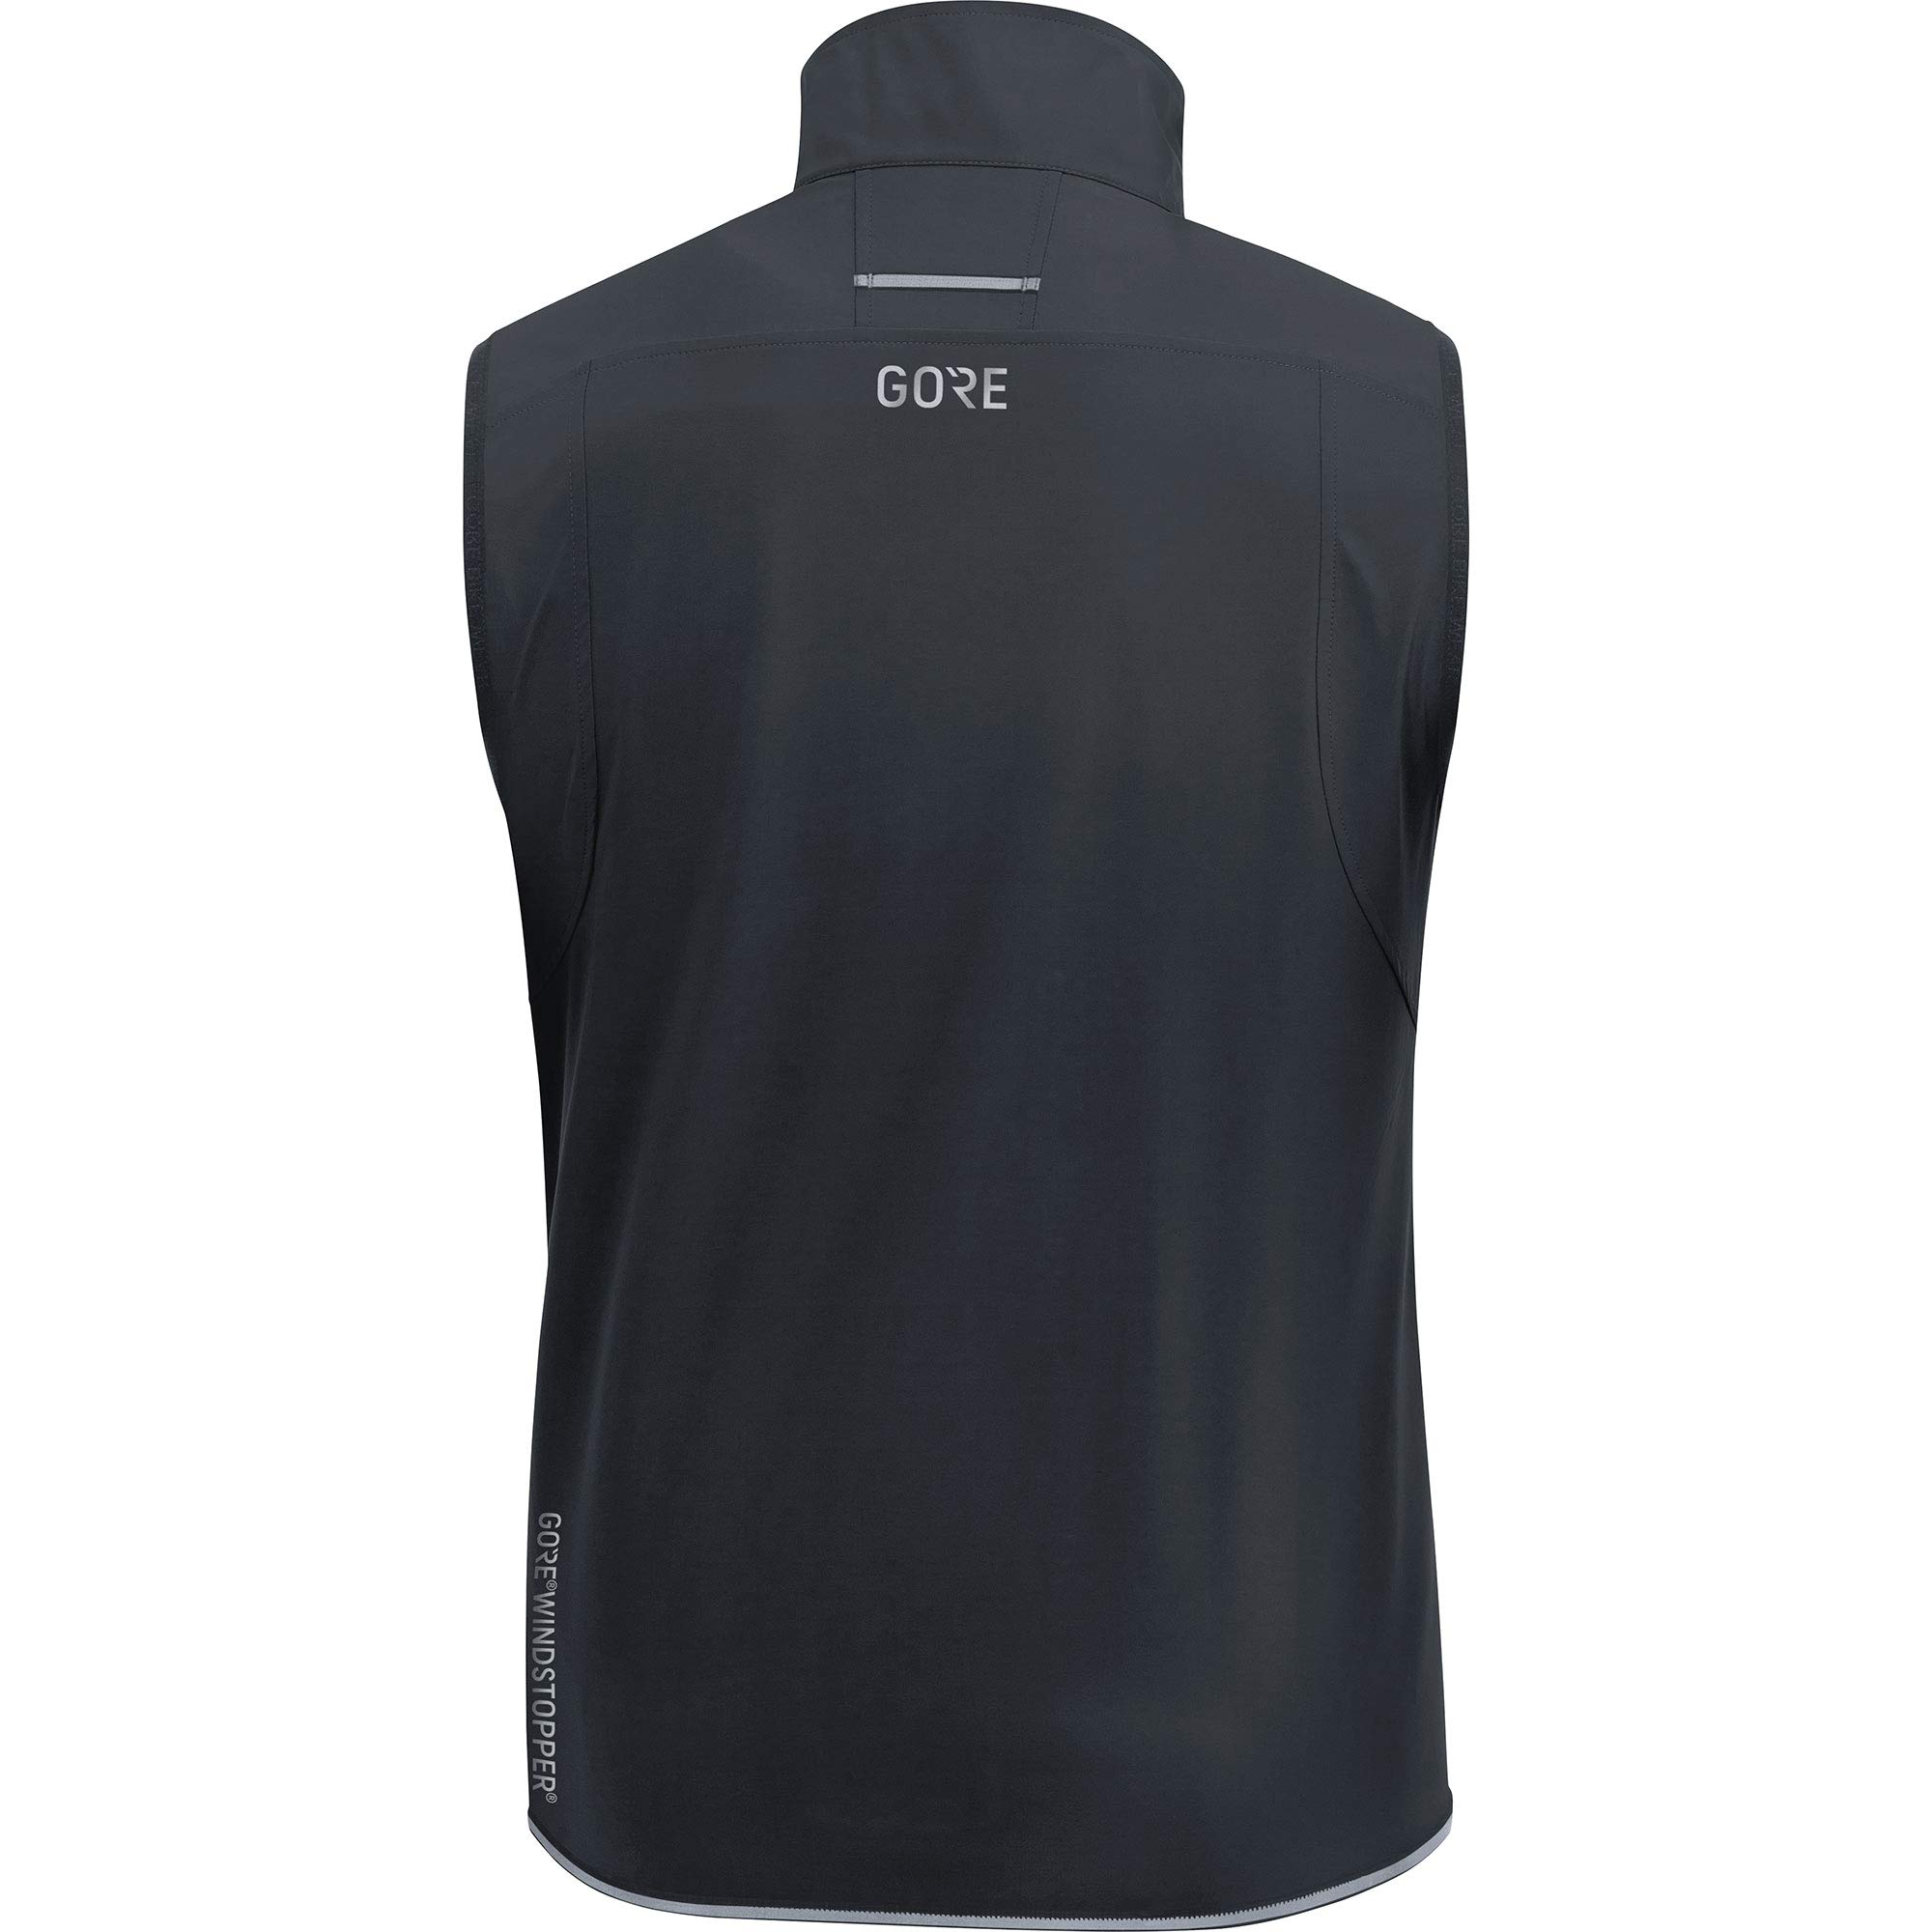 Gore Men's R3 Gws Vest,  black,  L by GORE WEAR (Image #4)